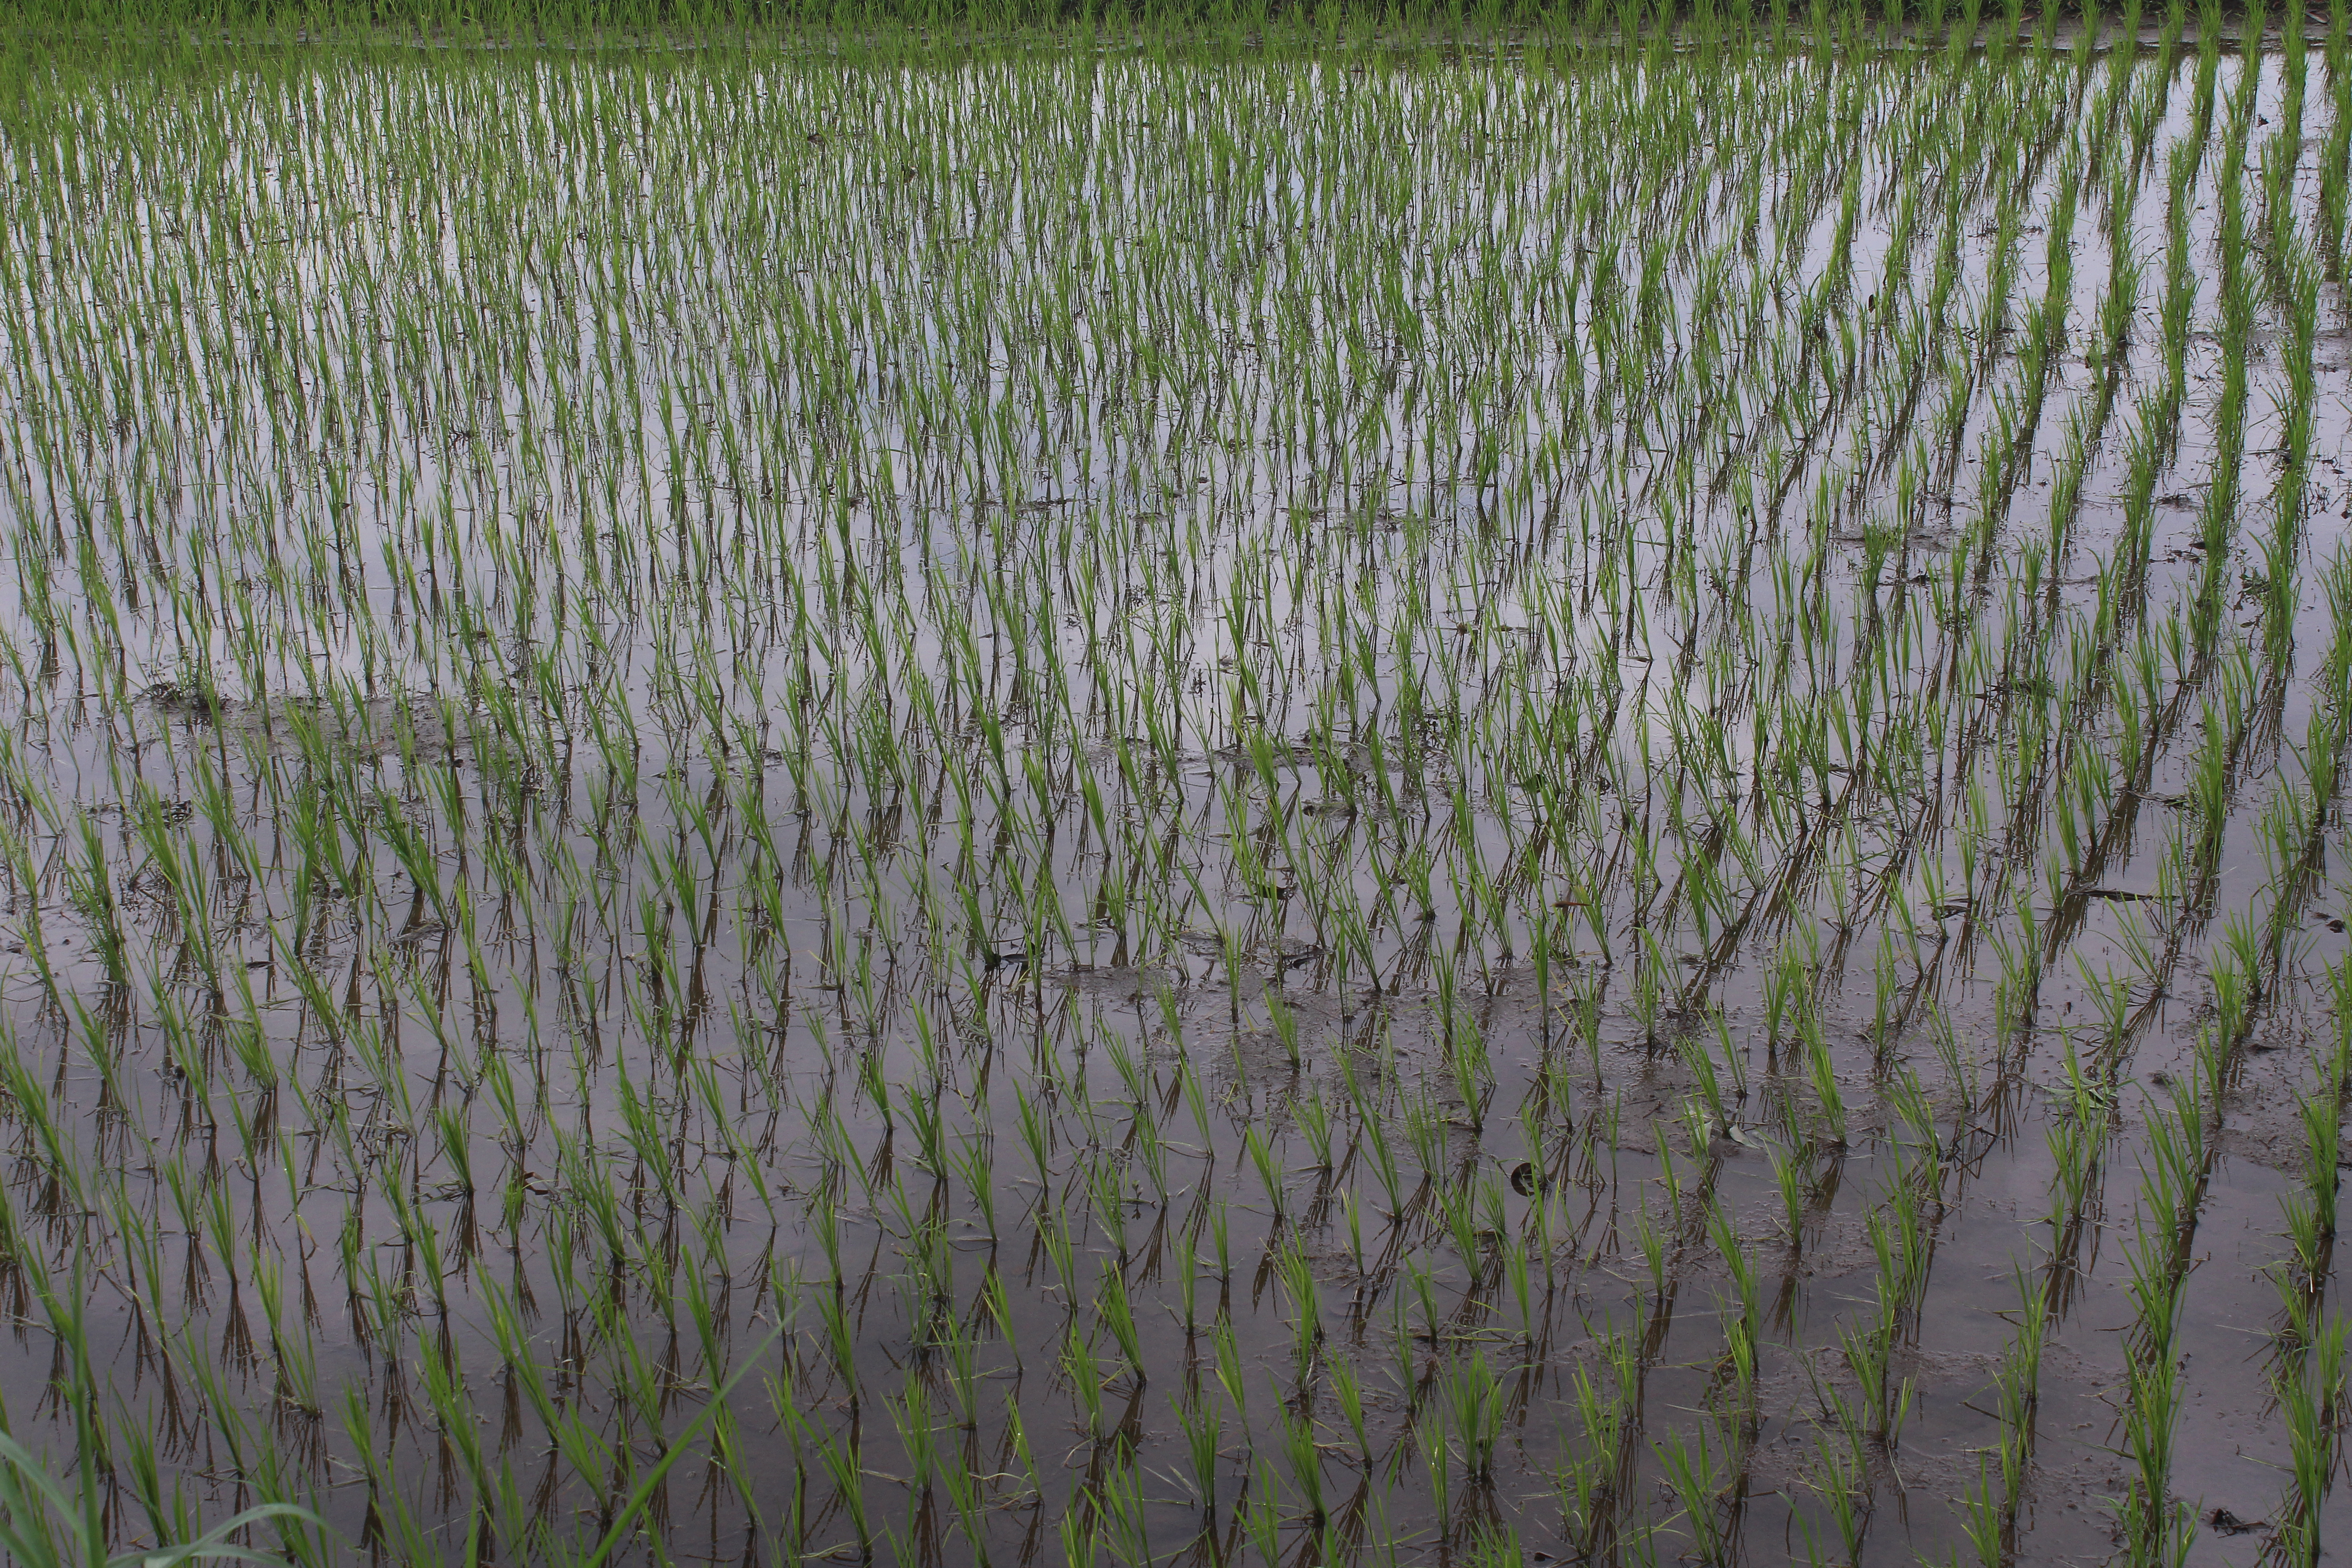 Wet rice paddy close up